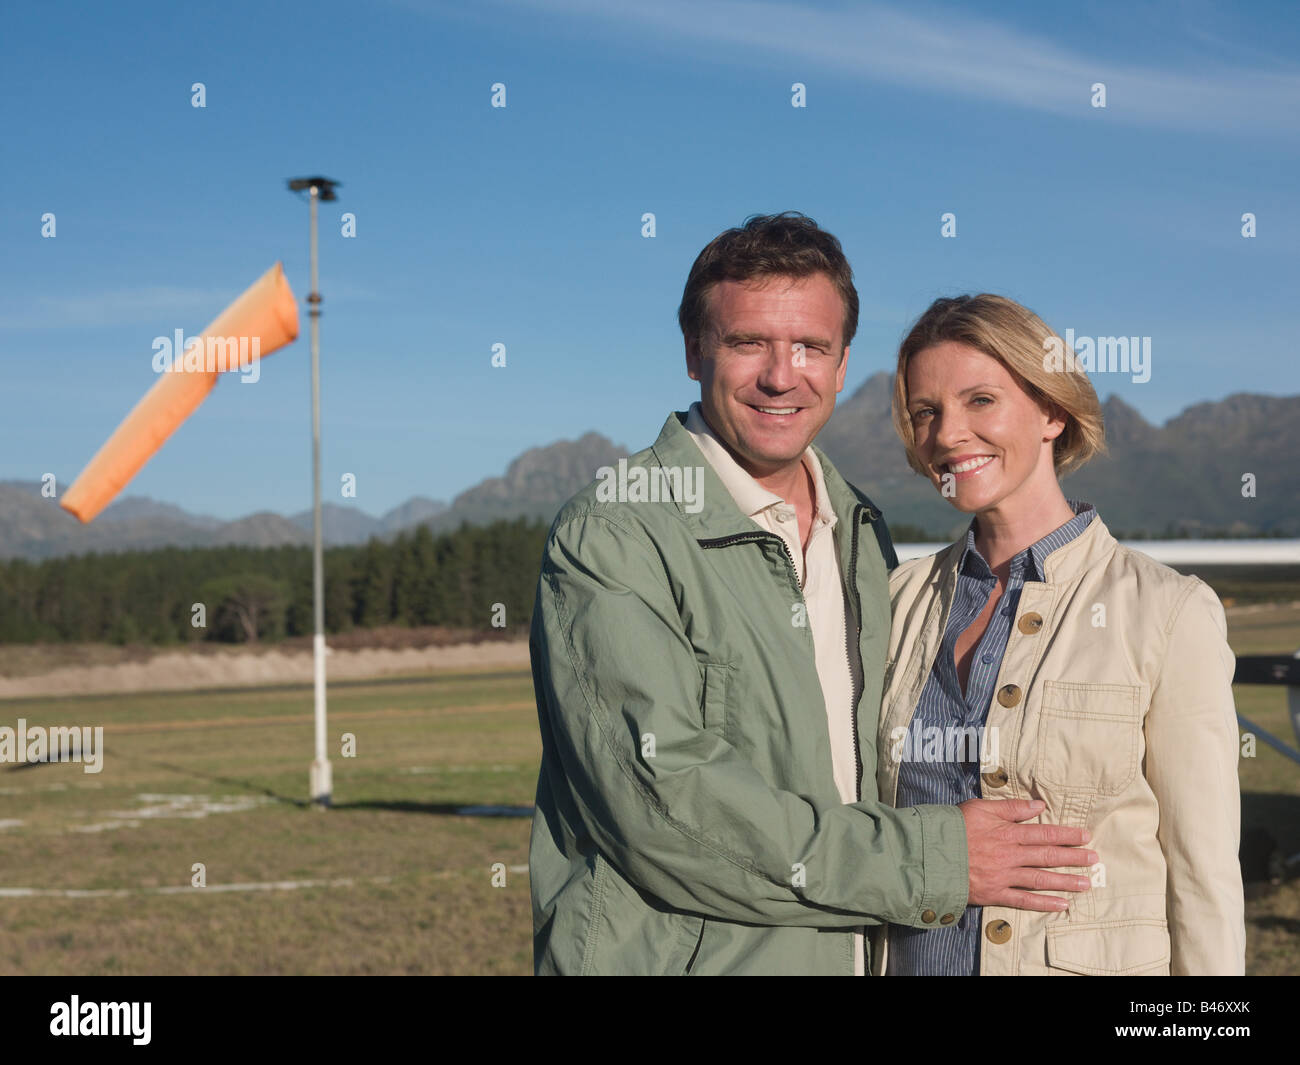 Couple on airfield - Stock Image